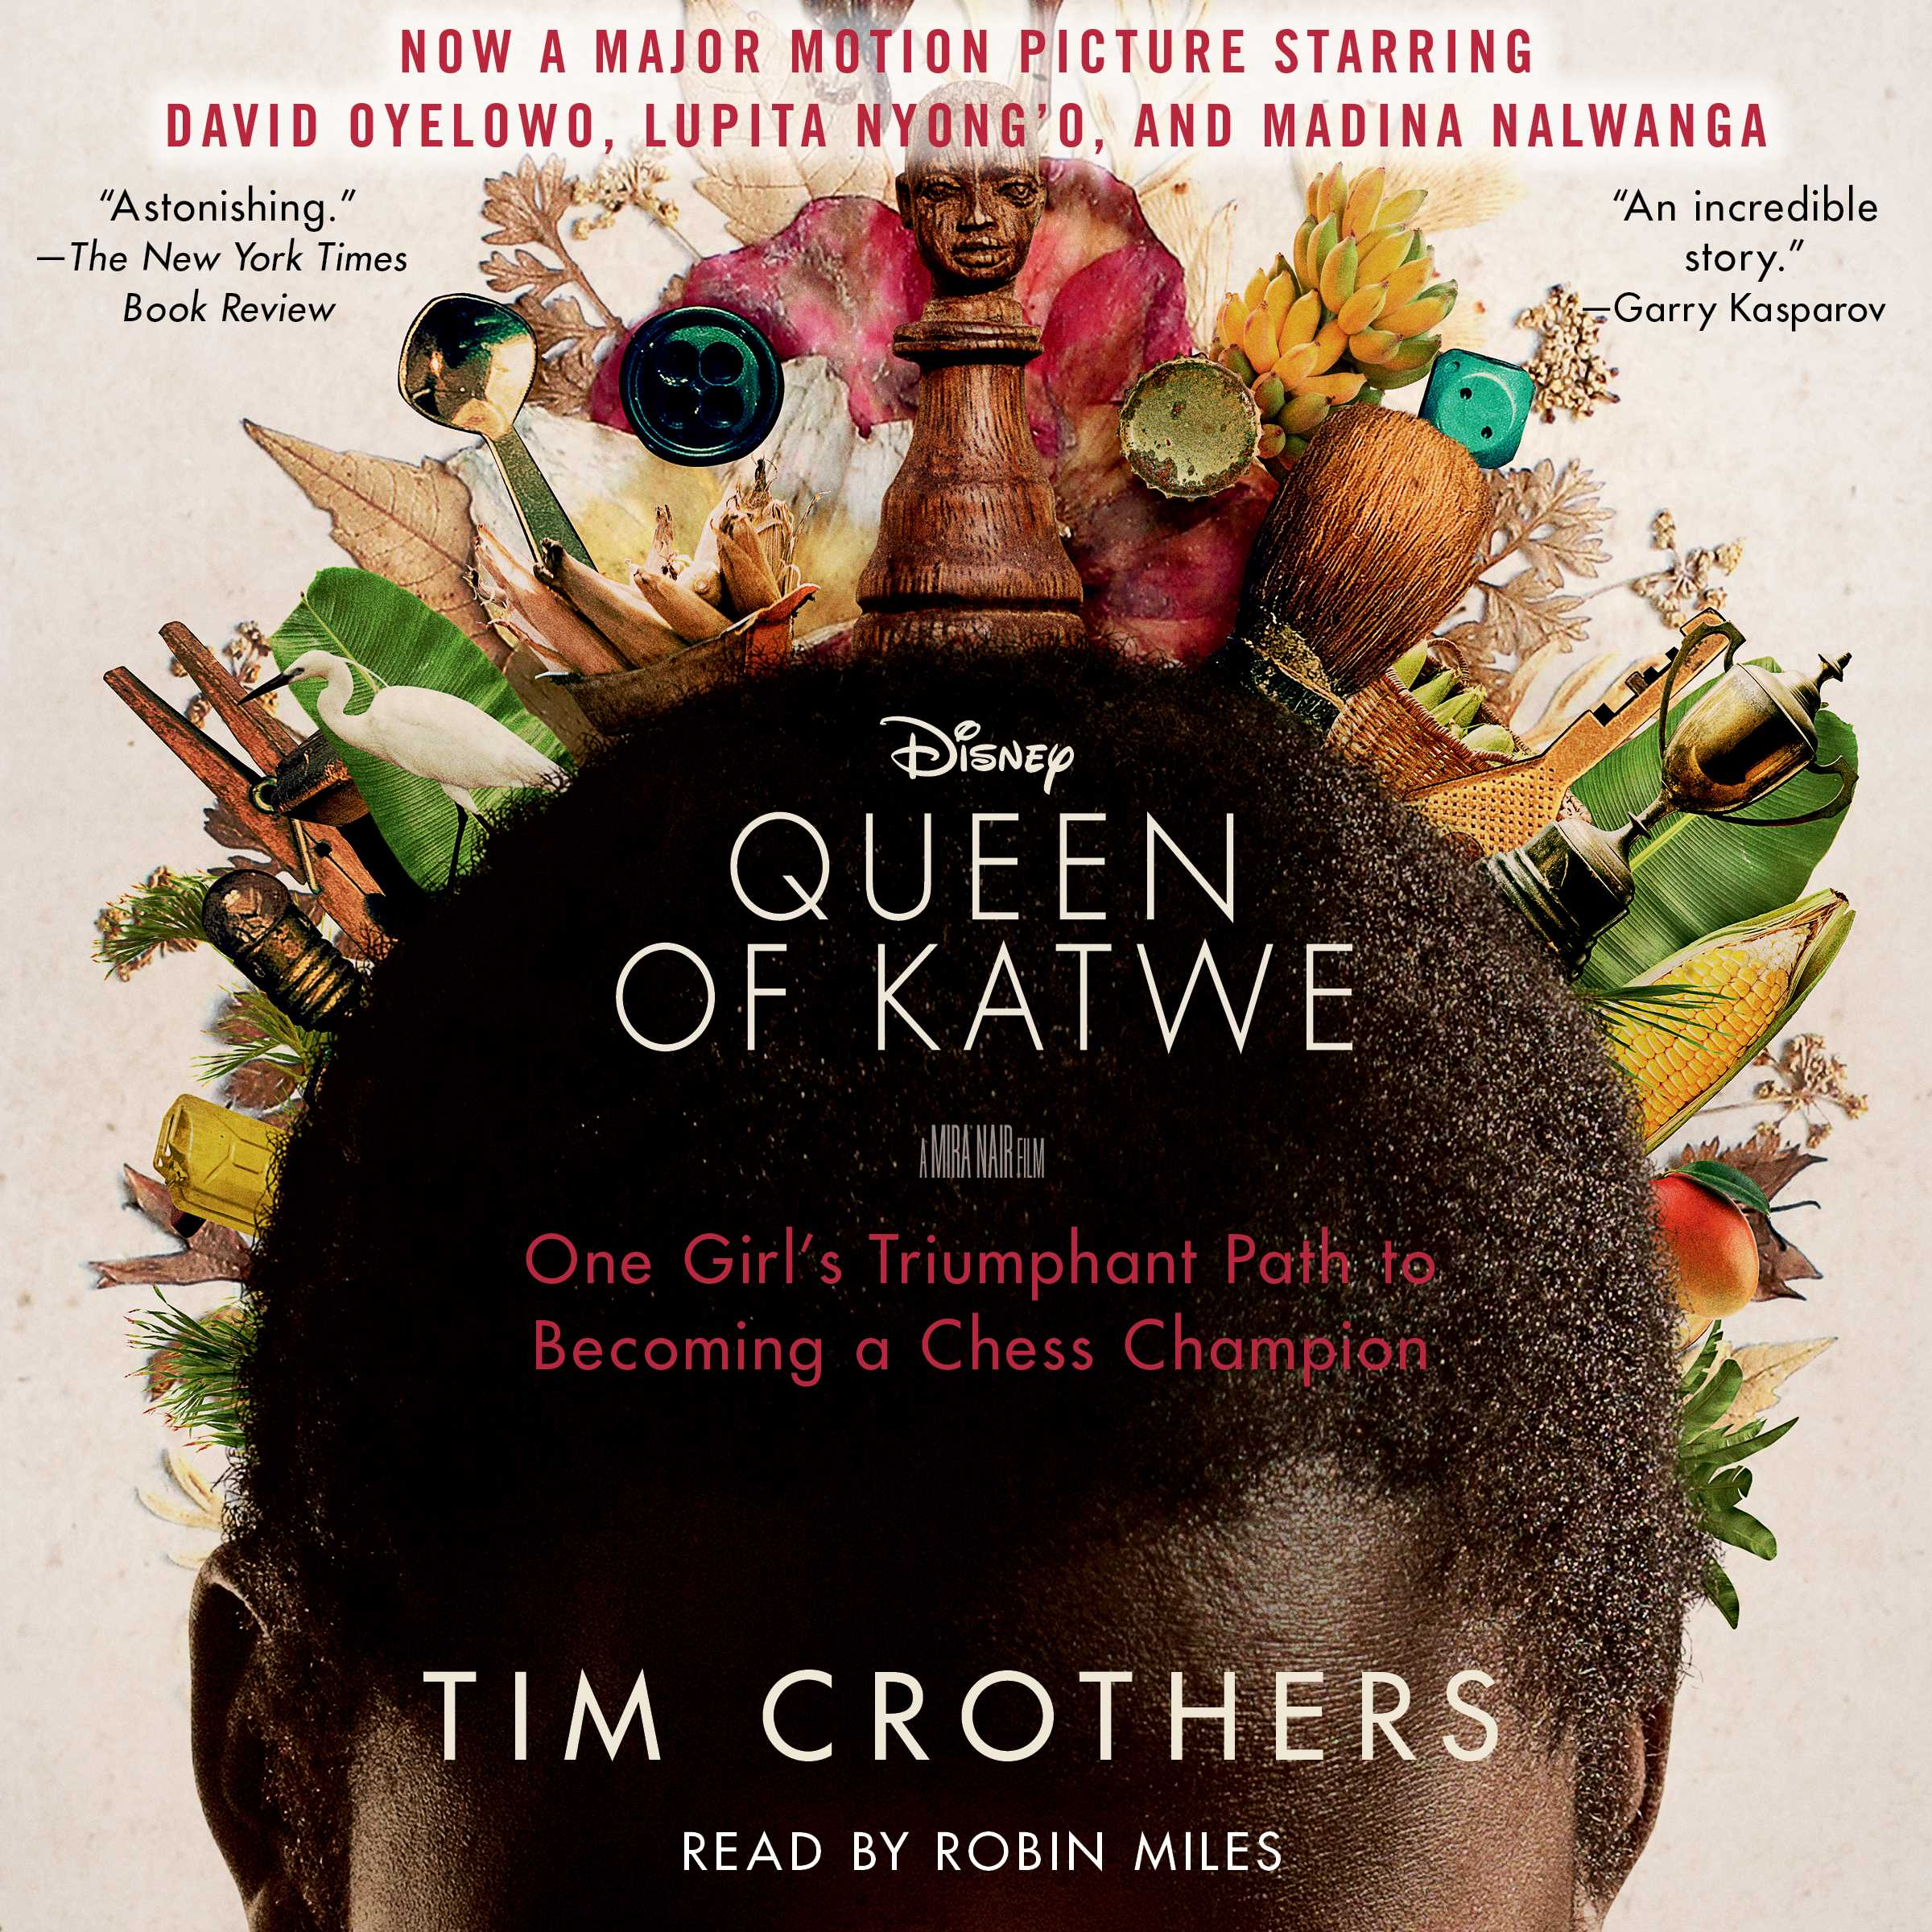 The queen of katwe 9781442356115 hr